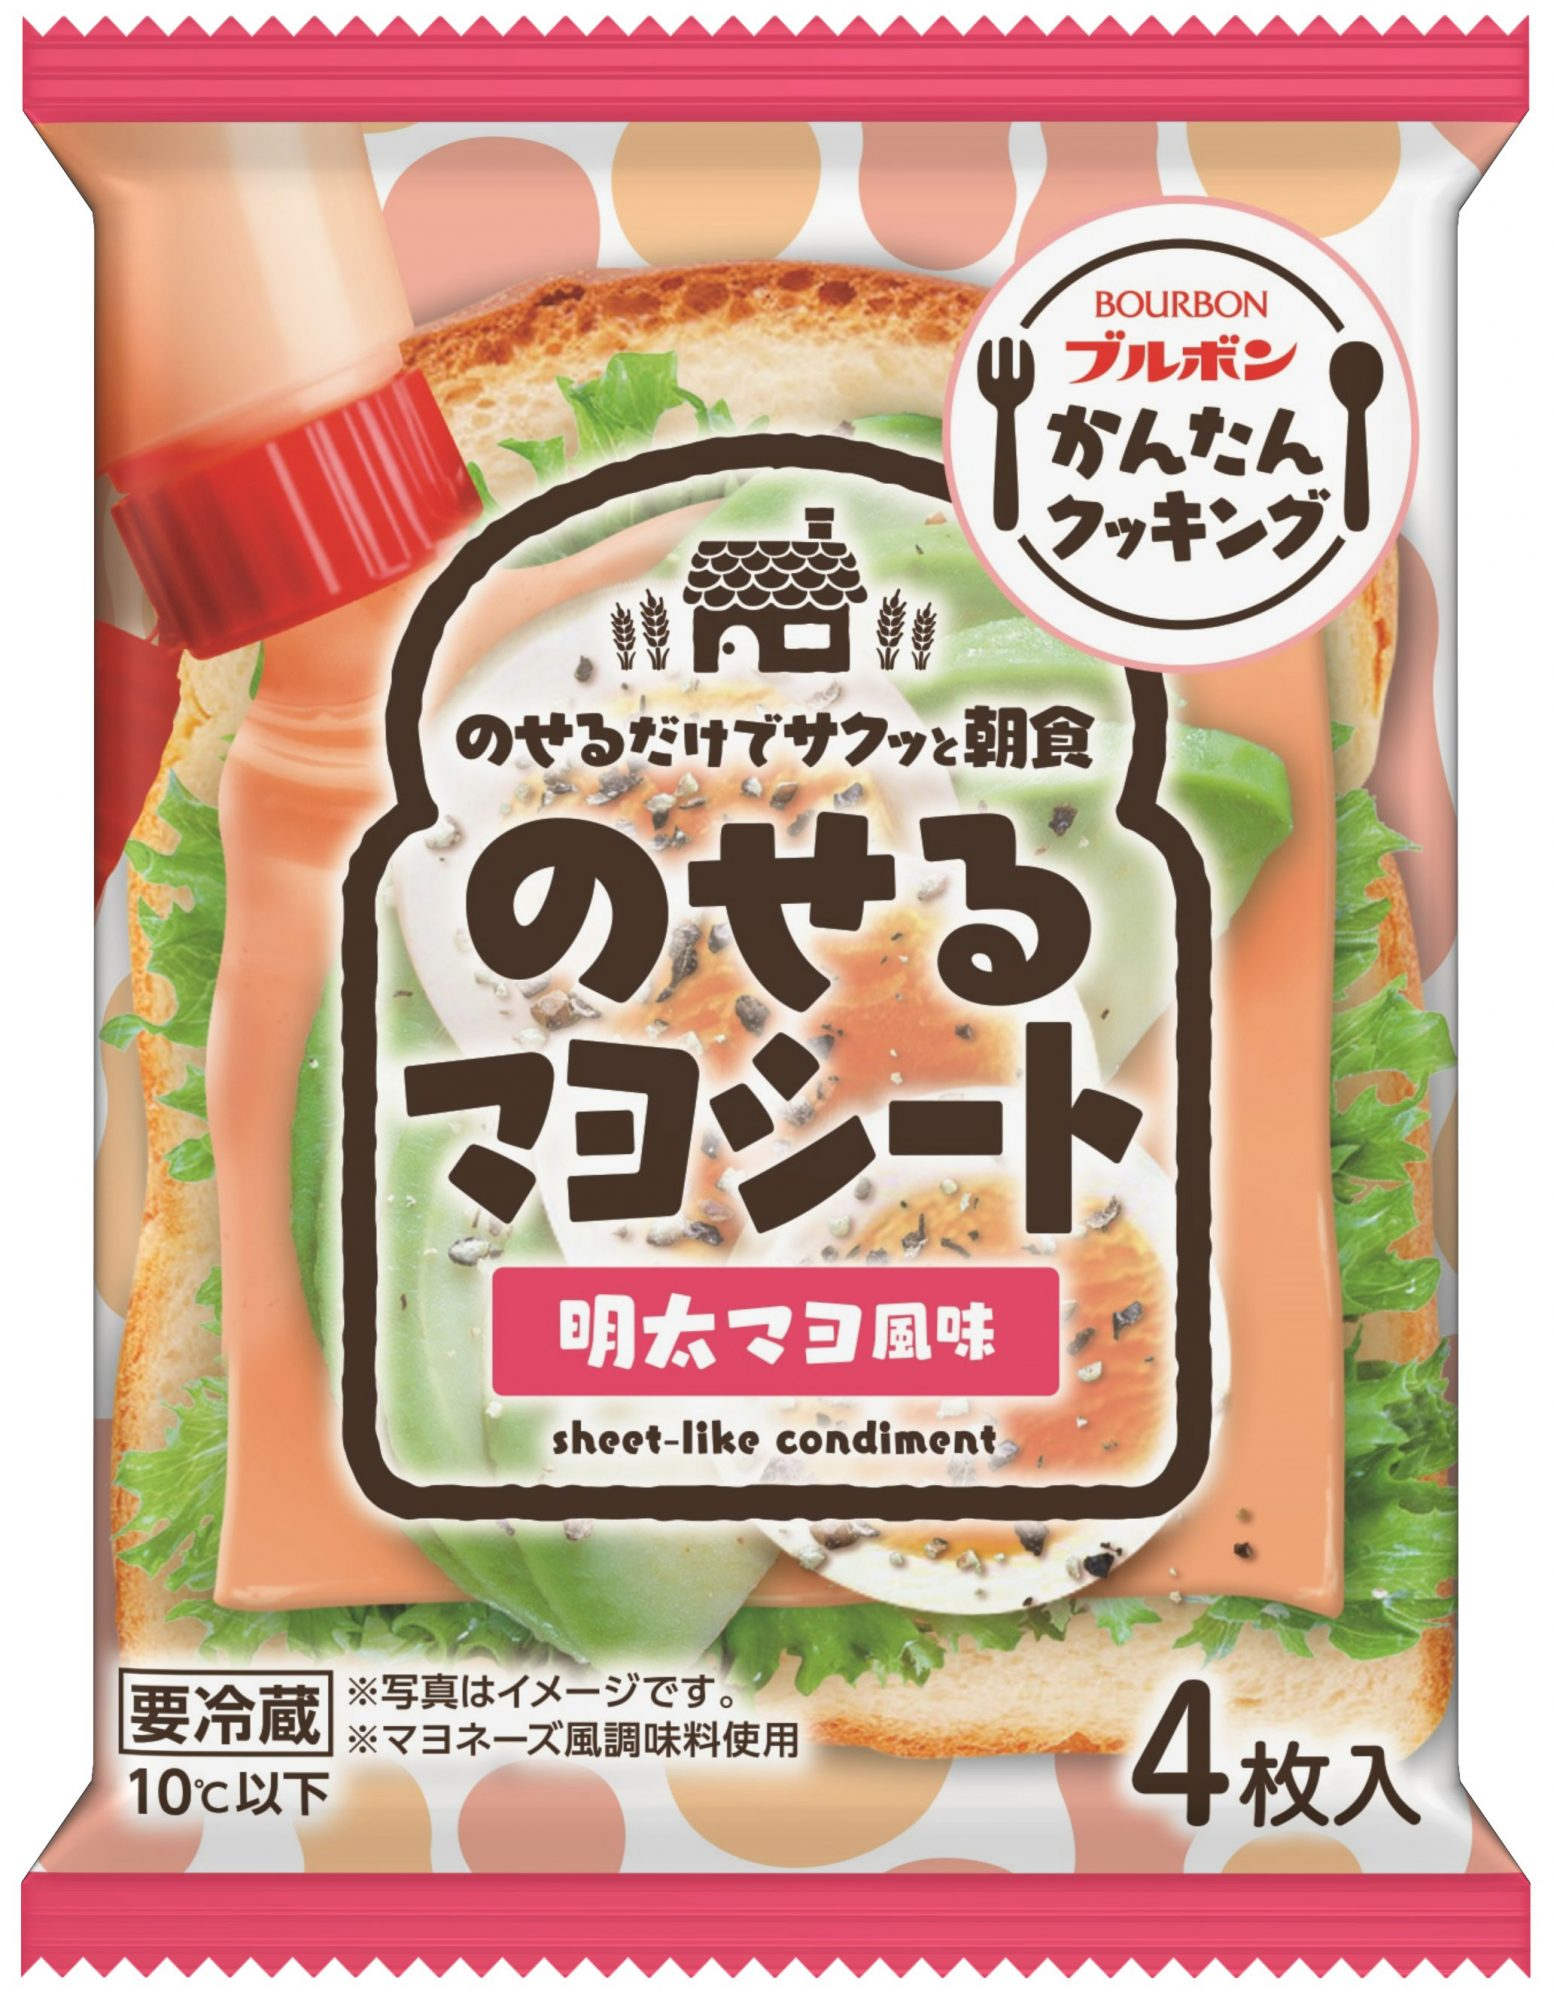 a package of mentaiko mayo slices